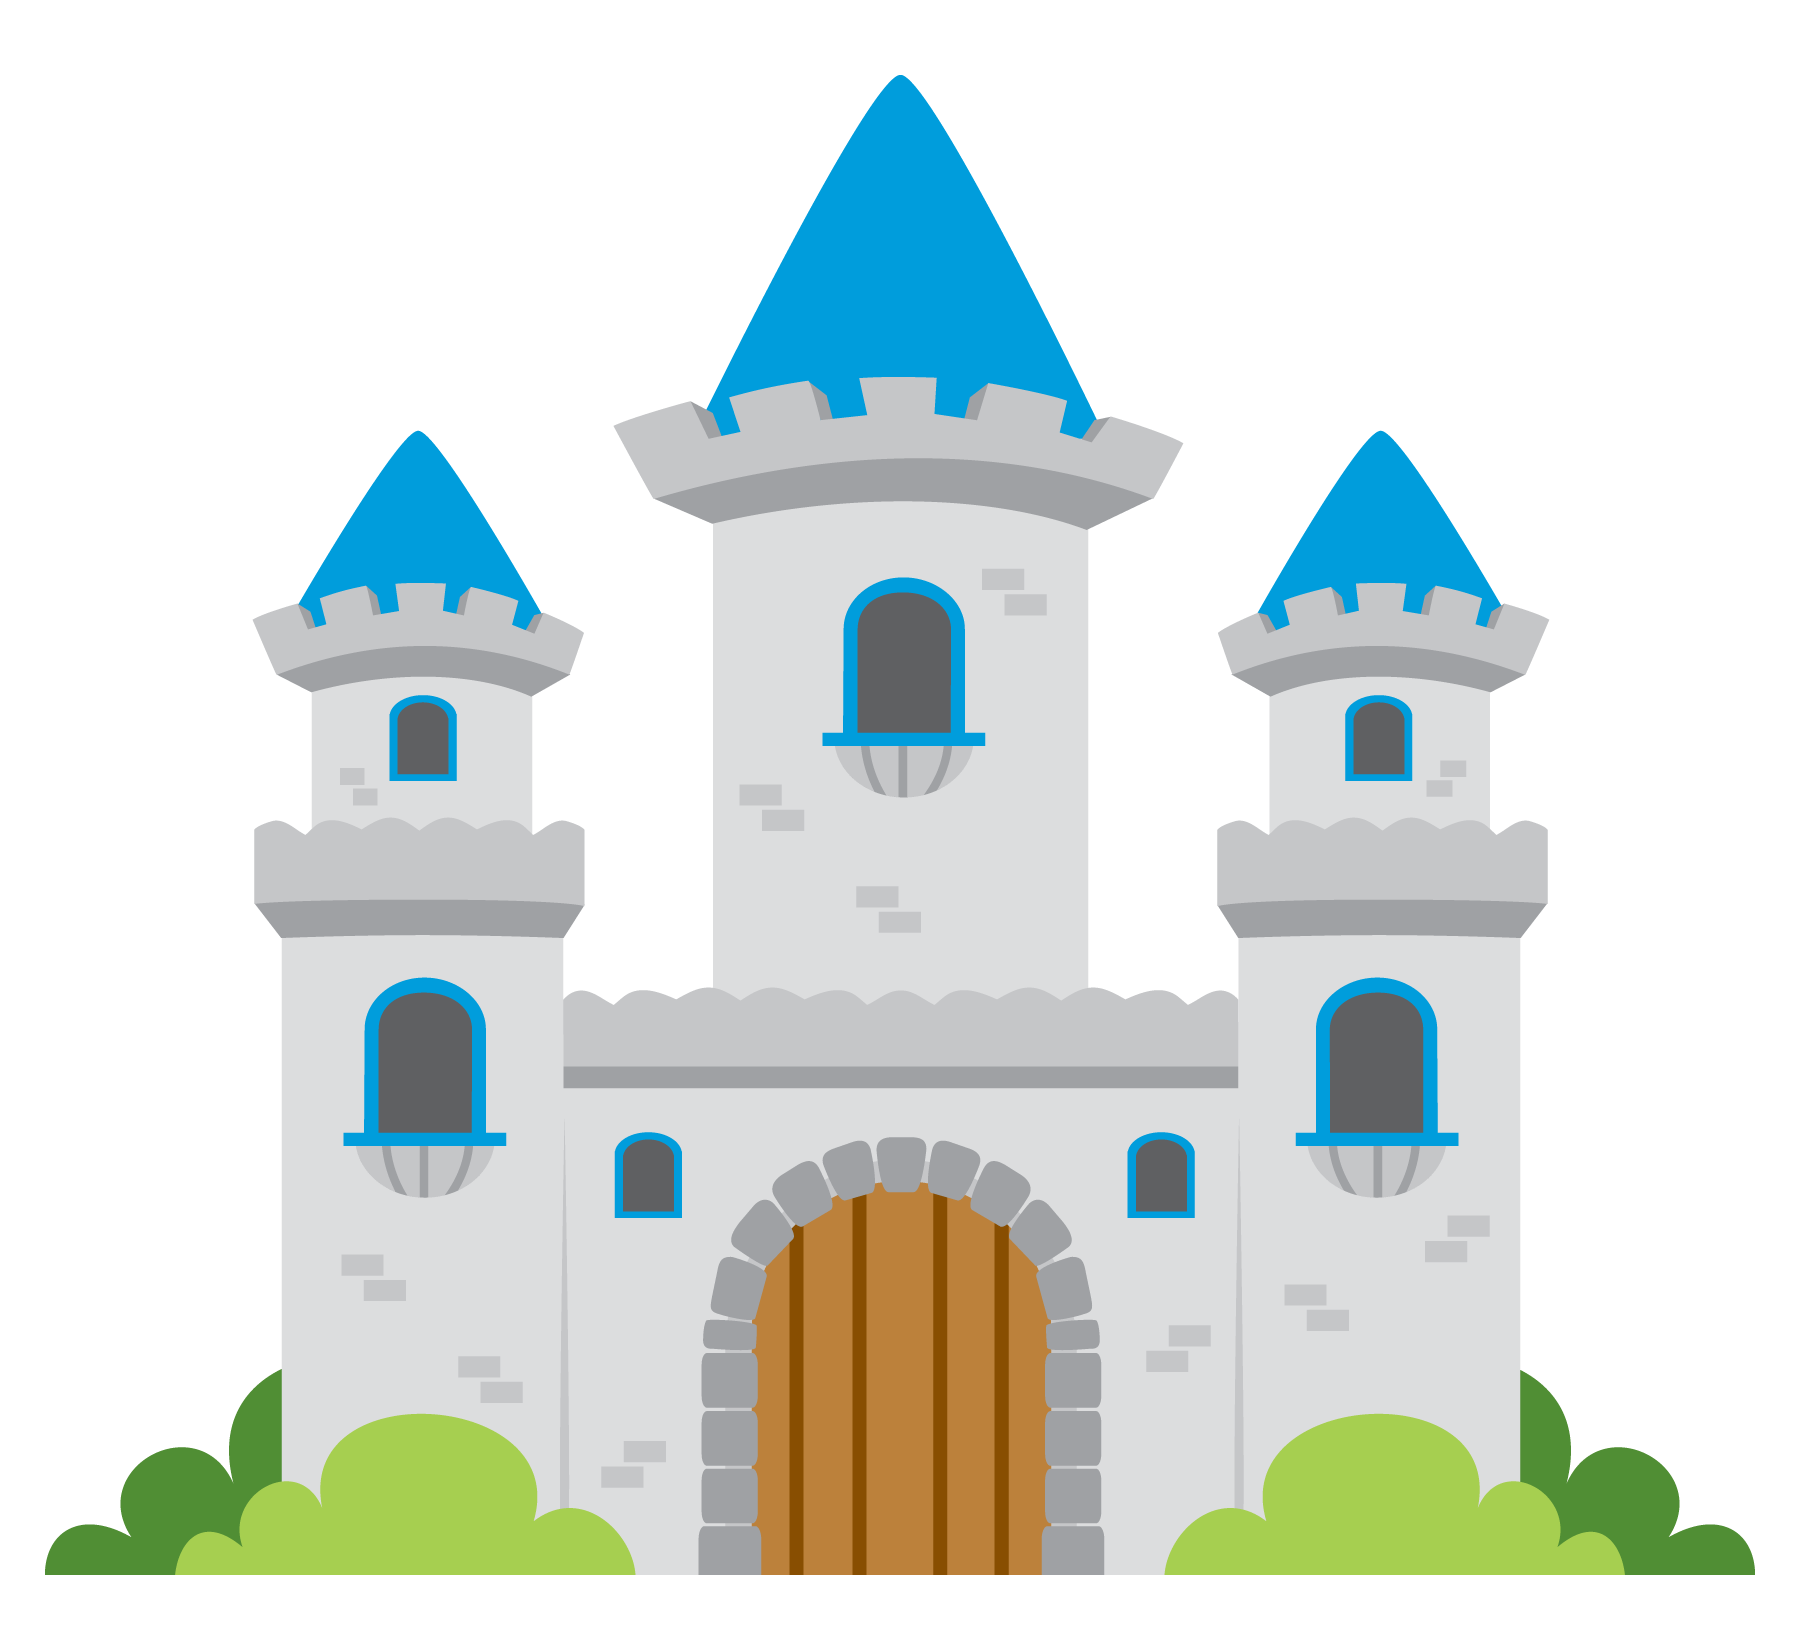 fairy tale castle clip art use these free images for your websites rh pinterest com clip art castle and clouds clip art castles fairy tales